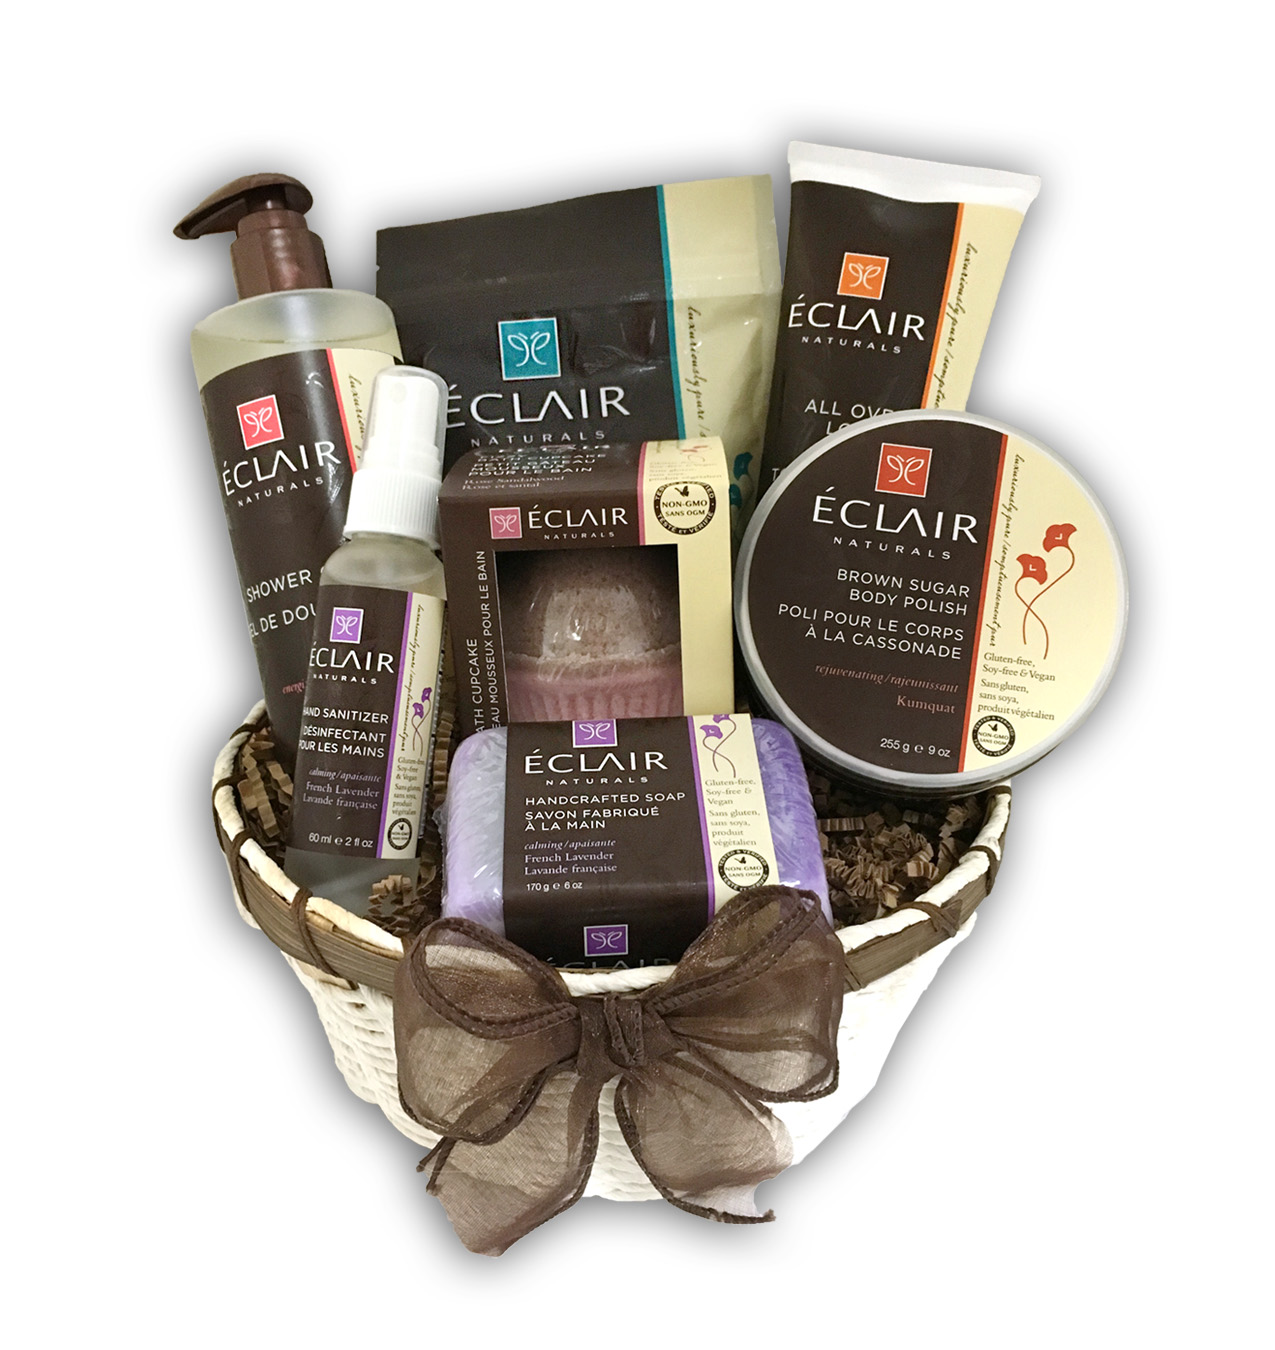 Eclair Naturals: And The Winner Of The Gift Basket Is?